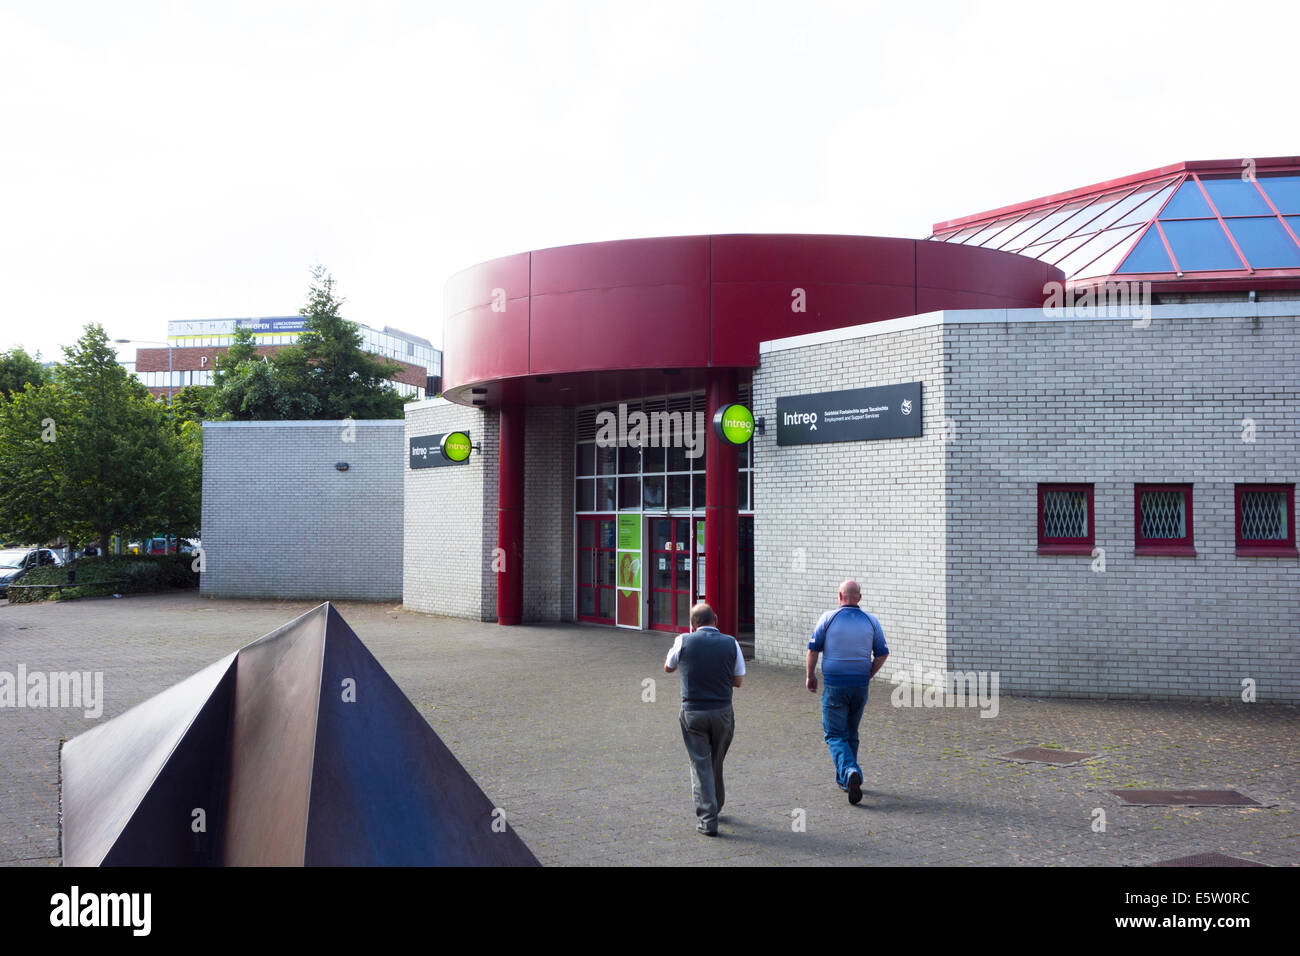 The entrance to the Intreo Social Welfare offices at Tallaght, Dublin, Ireland - Stock Image